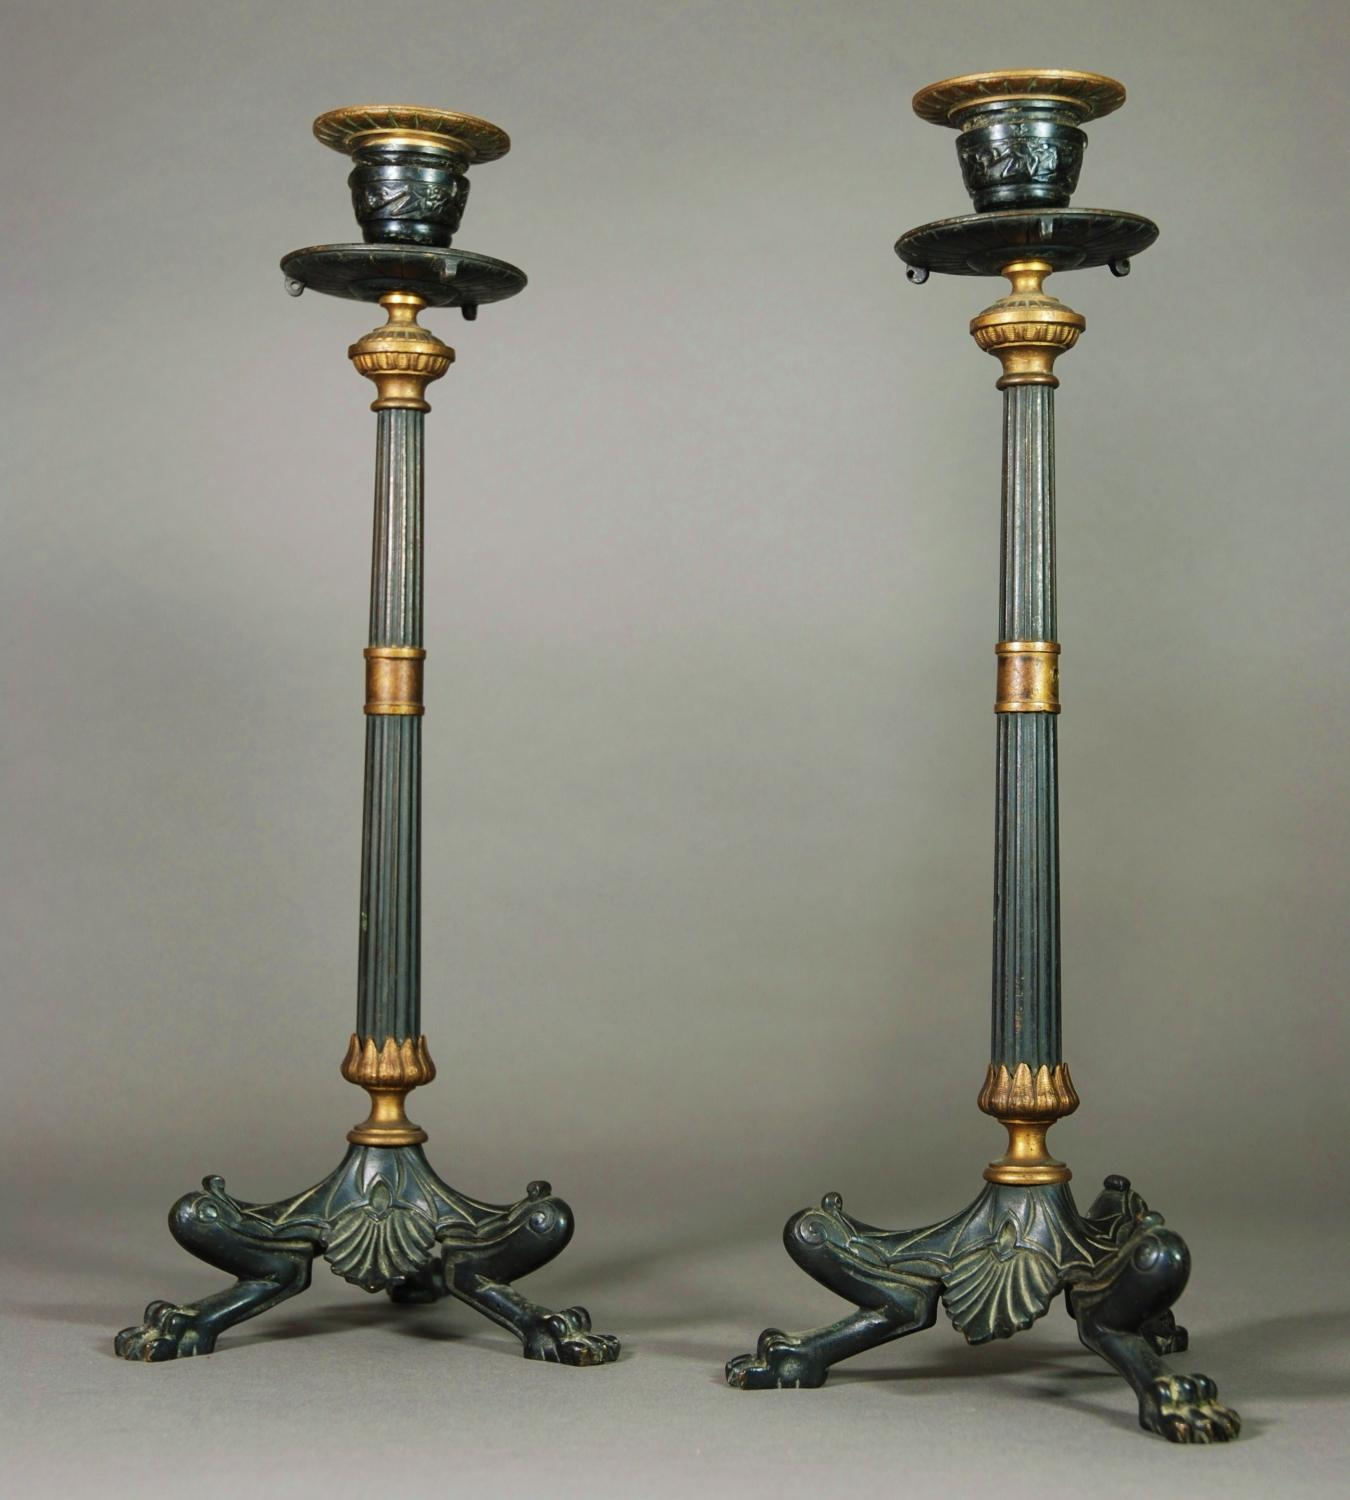 Pair of bronze & gilt Regency candlesticks